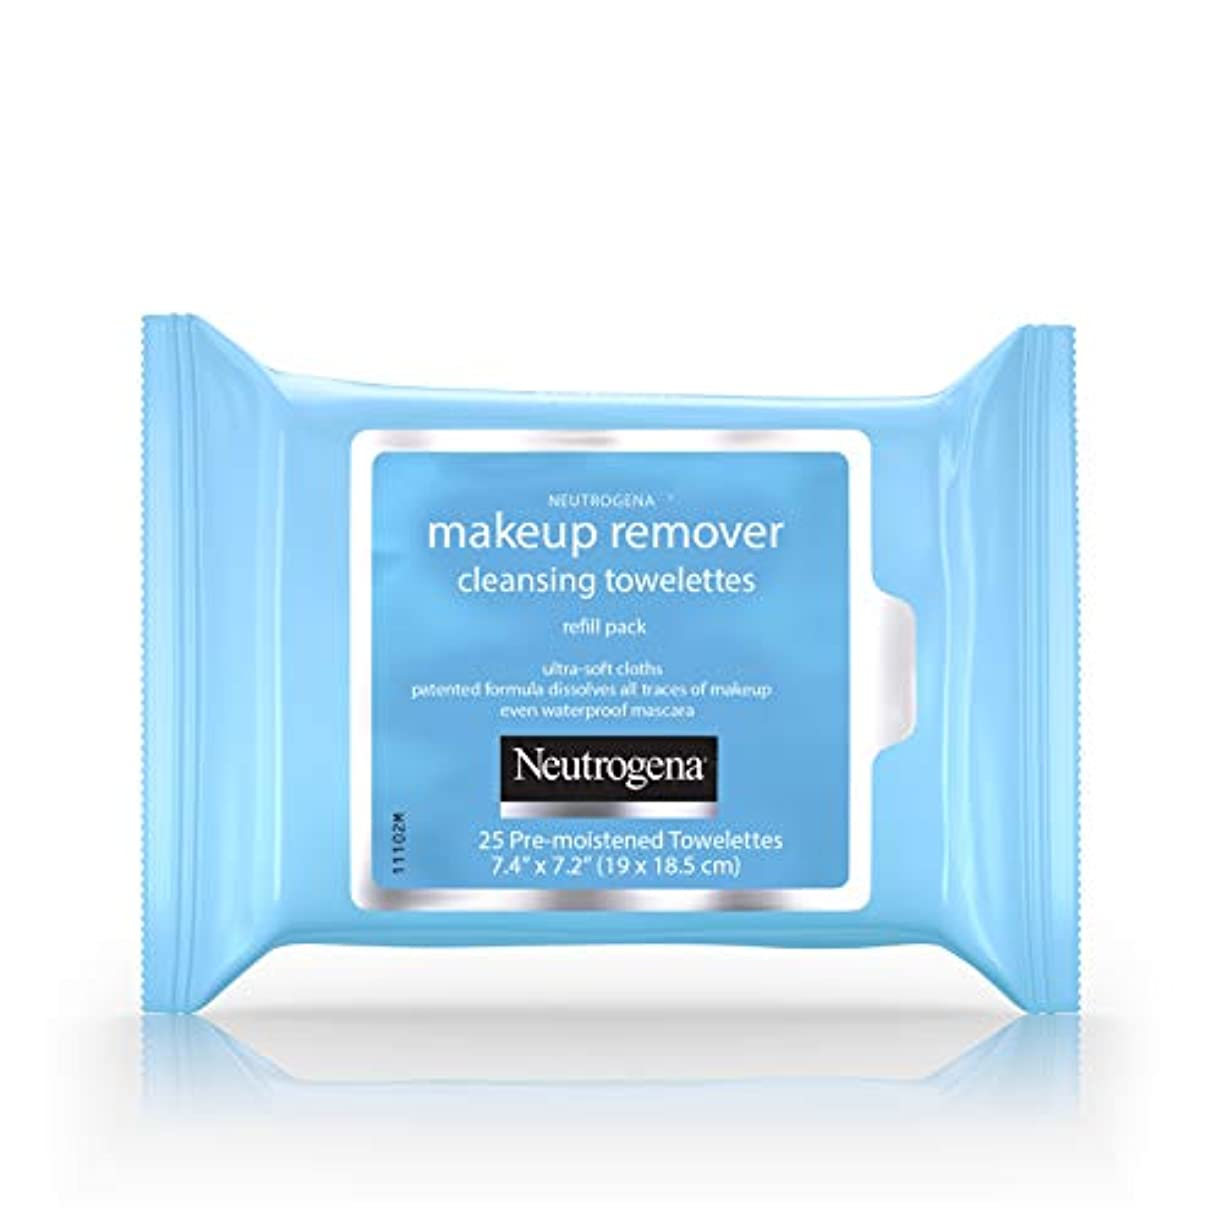 シェア徹底手足Neutrogena Make-up Remover Cleansing Towelettes Refill Pack 25 Pc (並行輸入品)